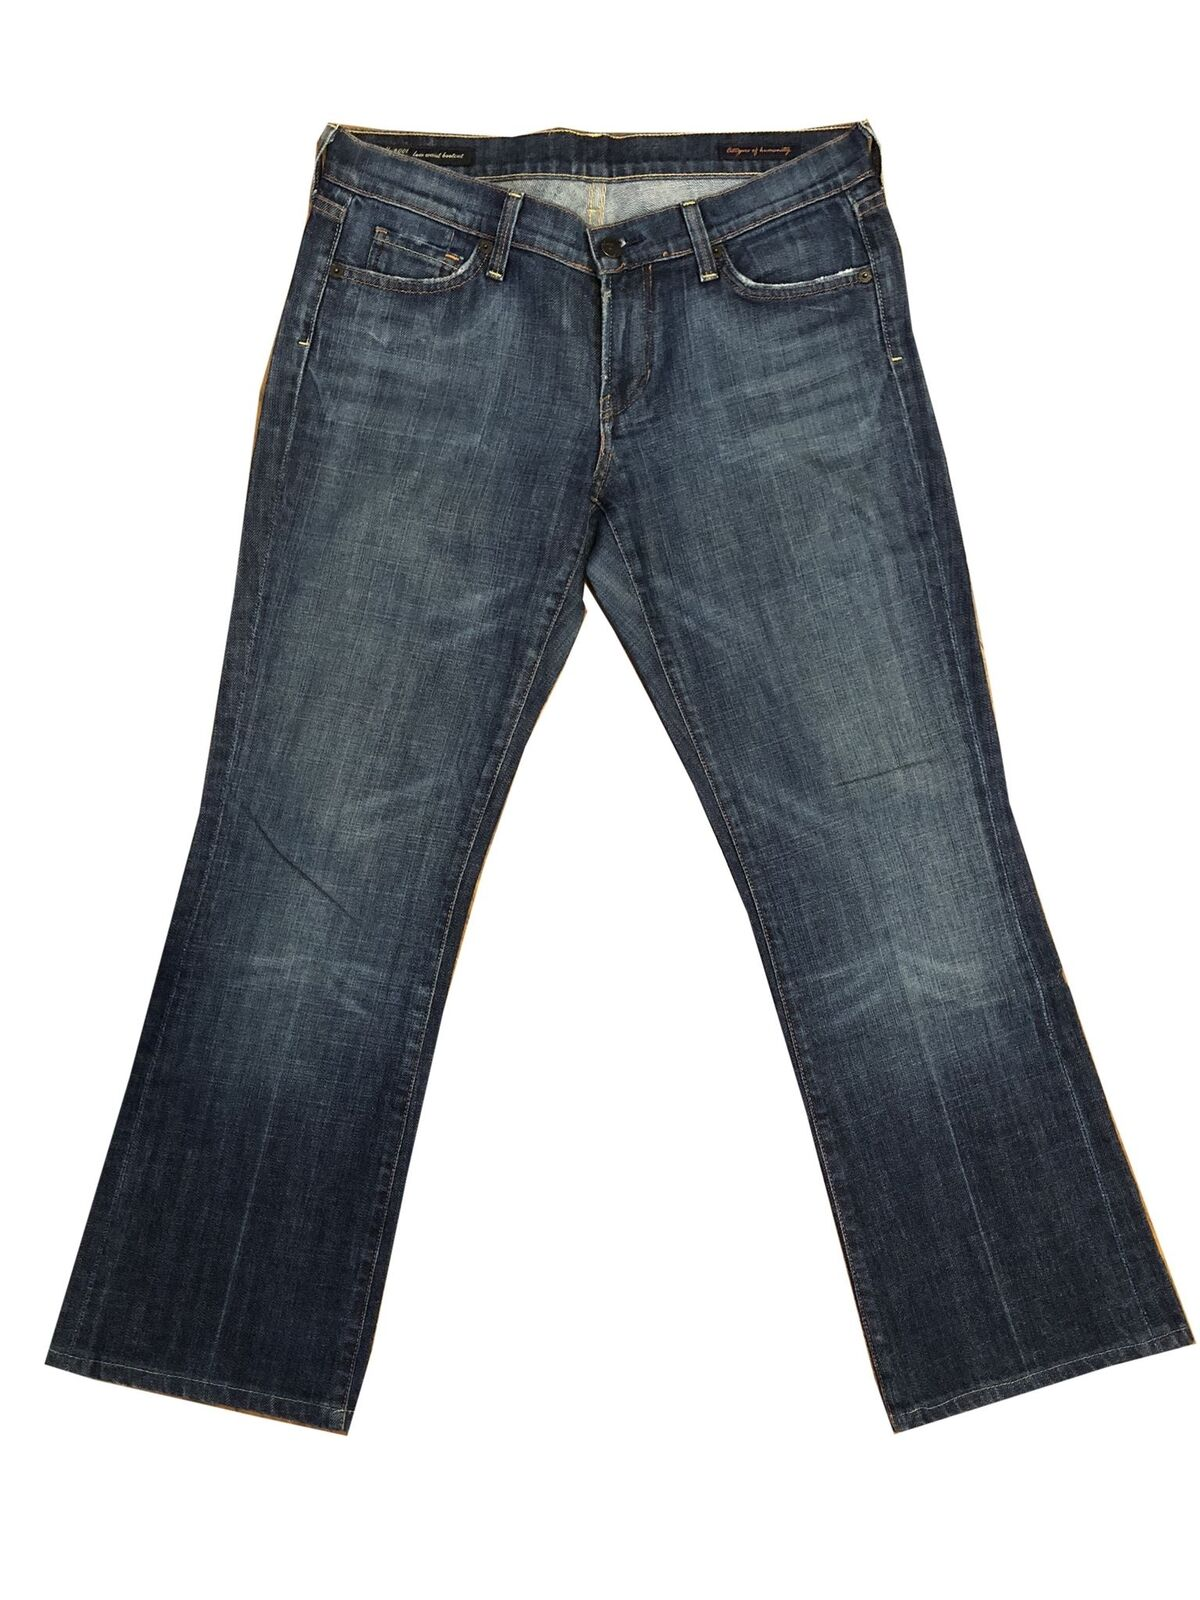 Citizens of Humanity Kelly Stretch Low Waist Bootcut Jeans Size 29